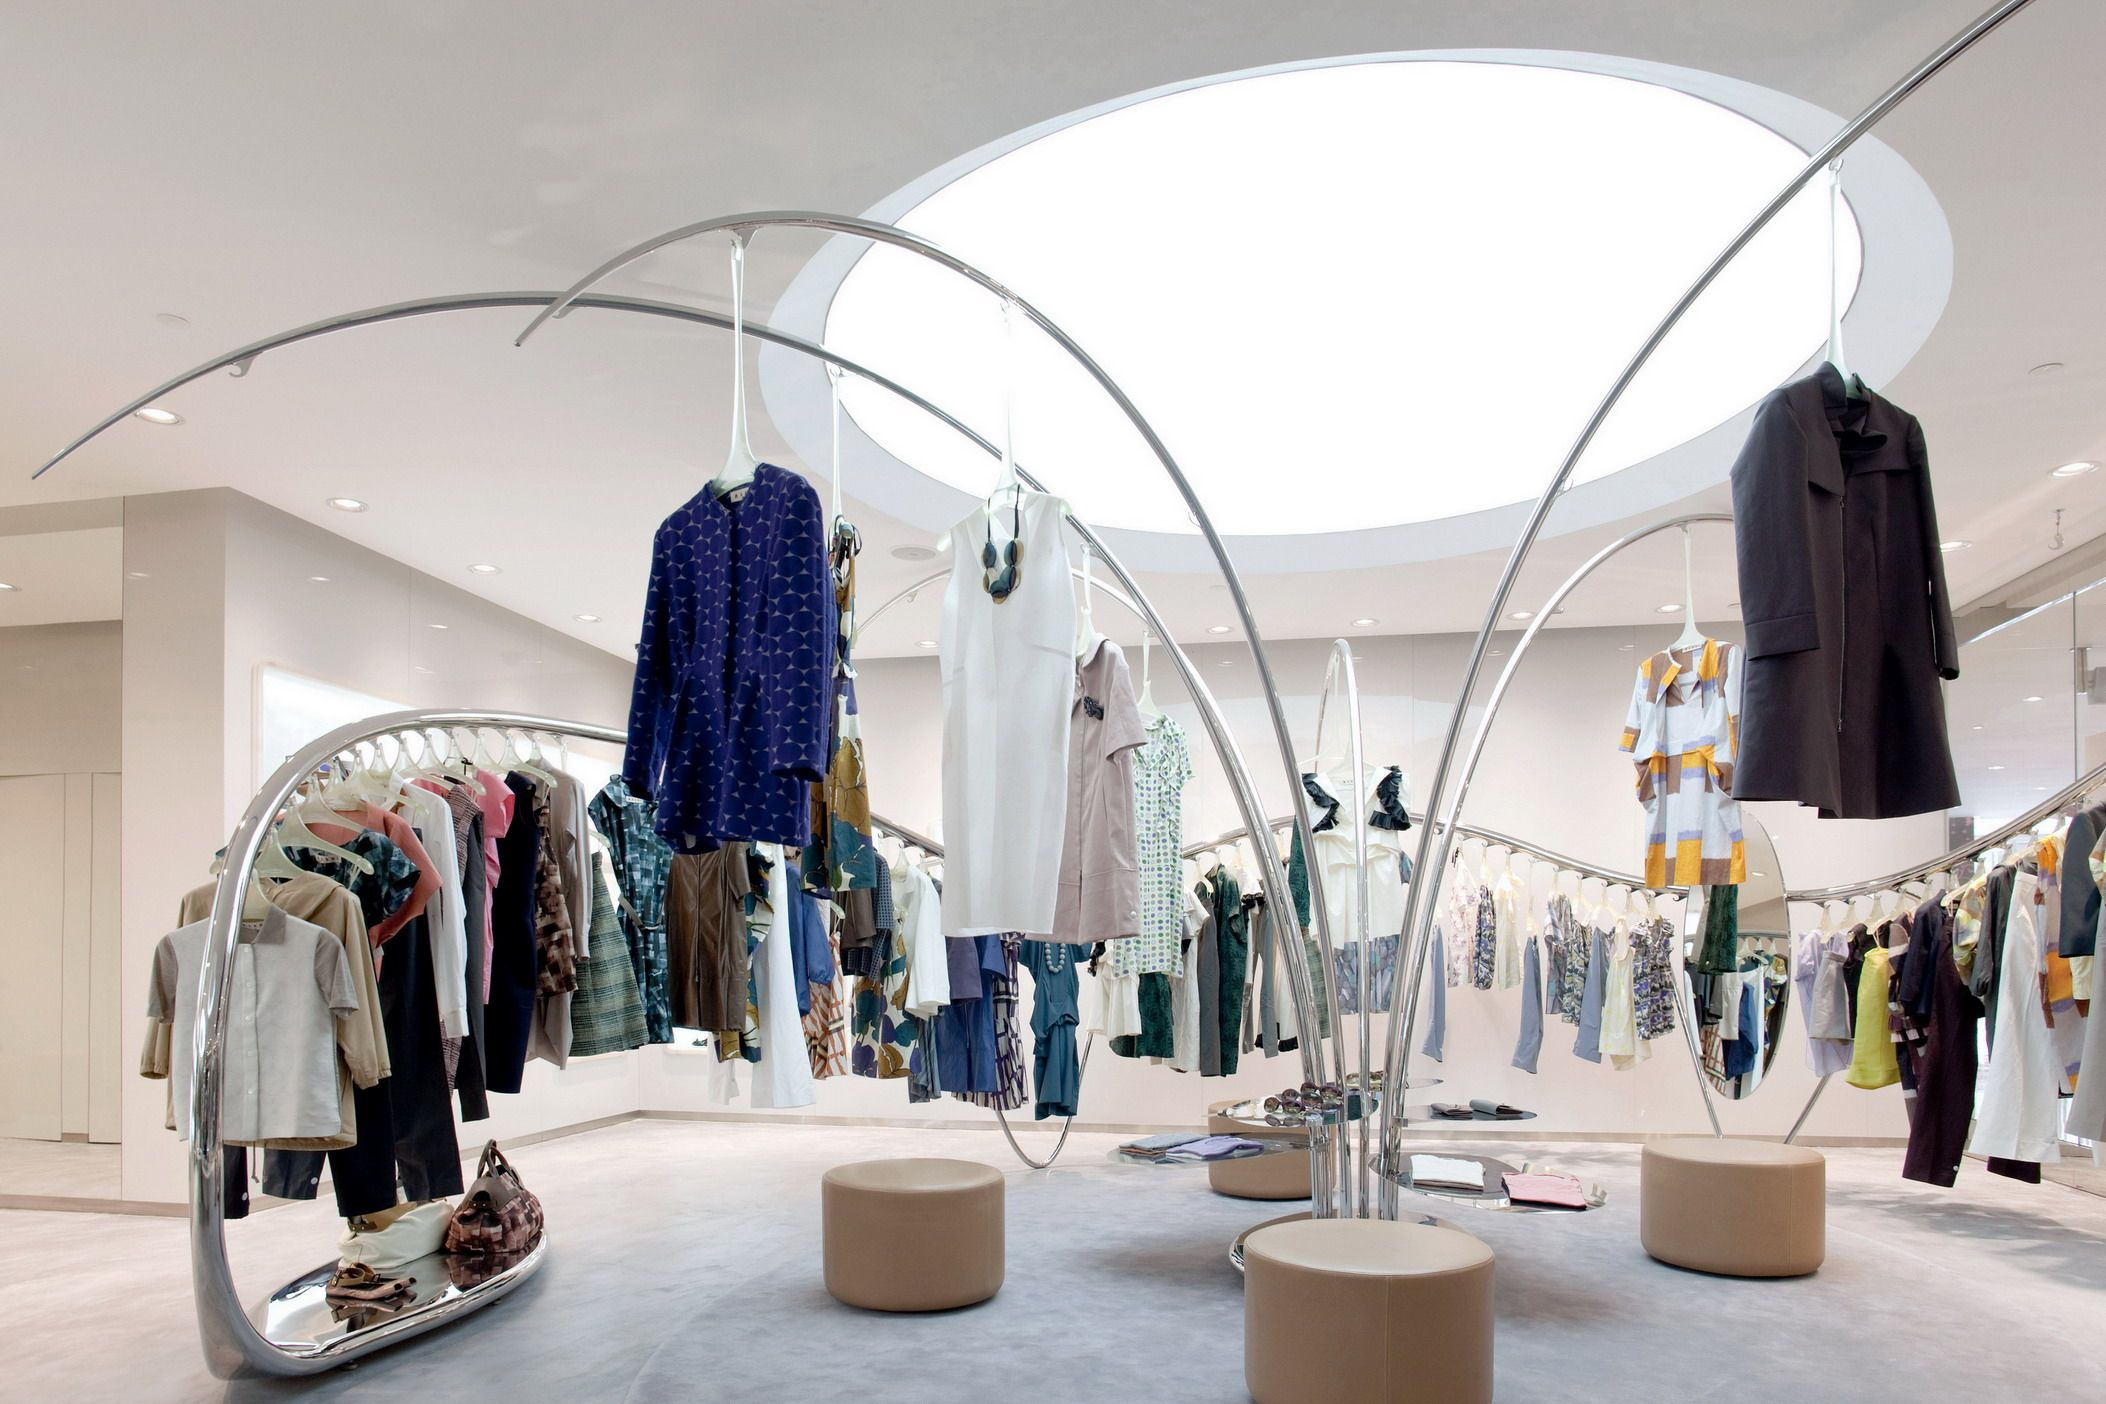 The iconic tree and flowing stainless steel rails to create flow and direction in Marni's Hangzhou Tower store.